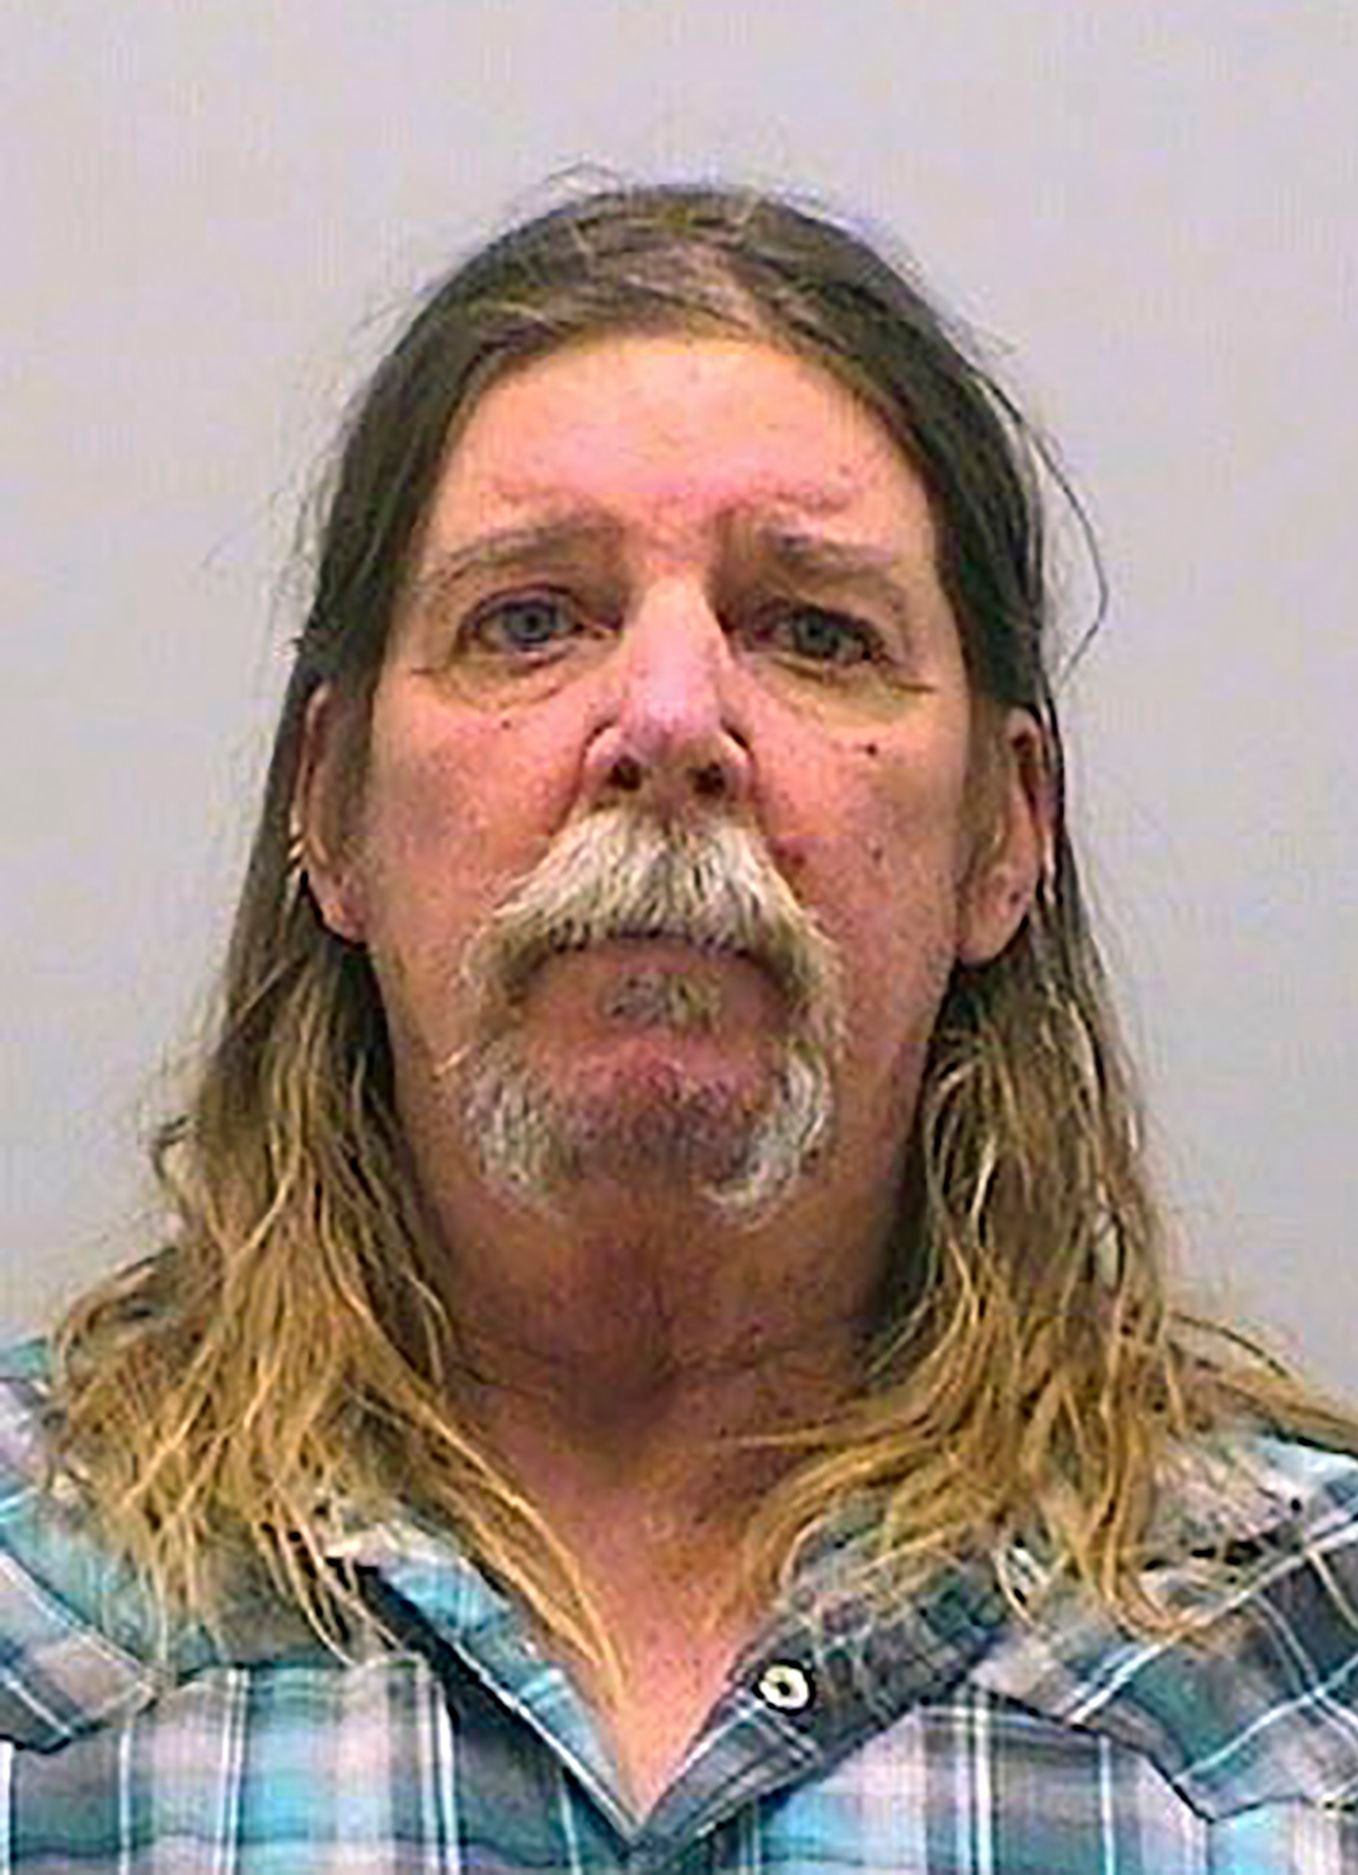 James Curtis Clanton, was arrested in the killing of Helene Pruszynski, a college student working as an intern for a Denver radio station nearly 40 years ago.